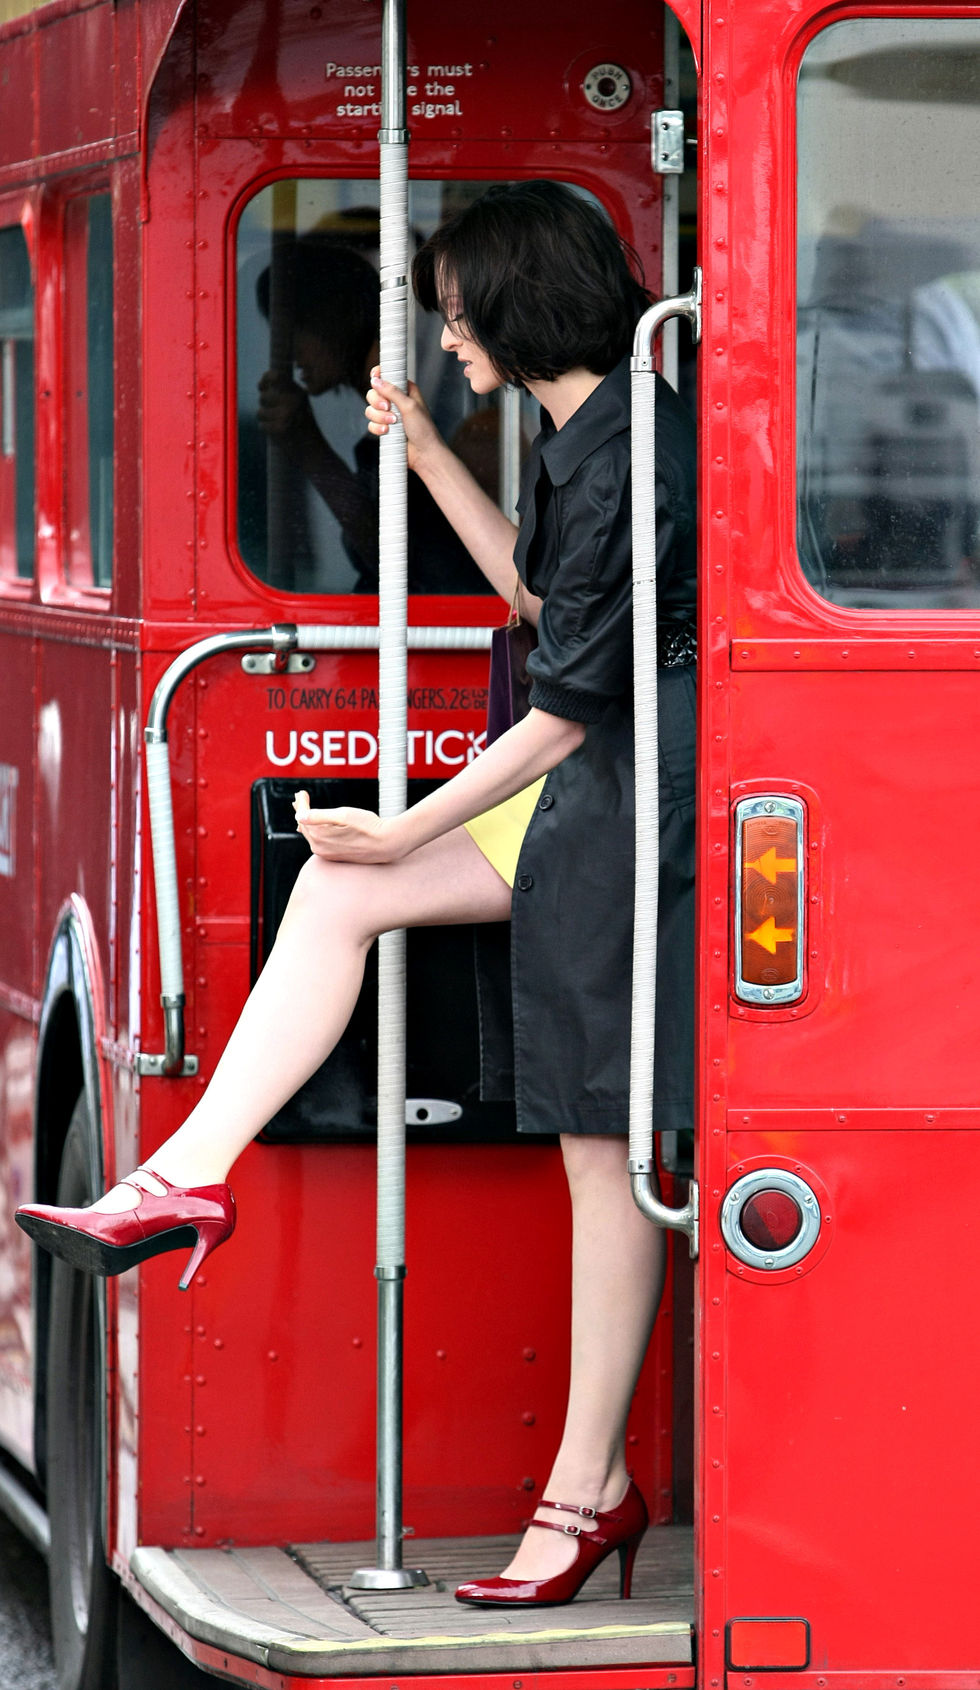 sophie-ellis-bextor-on-the-set-of-the-rimmel-advert-01